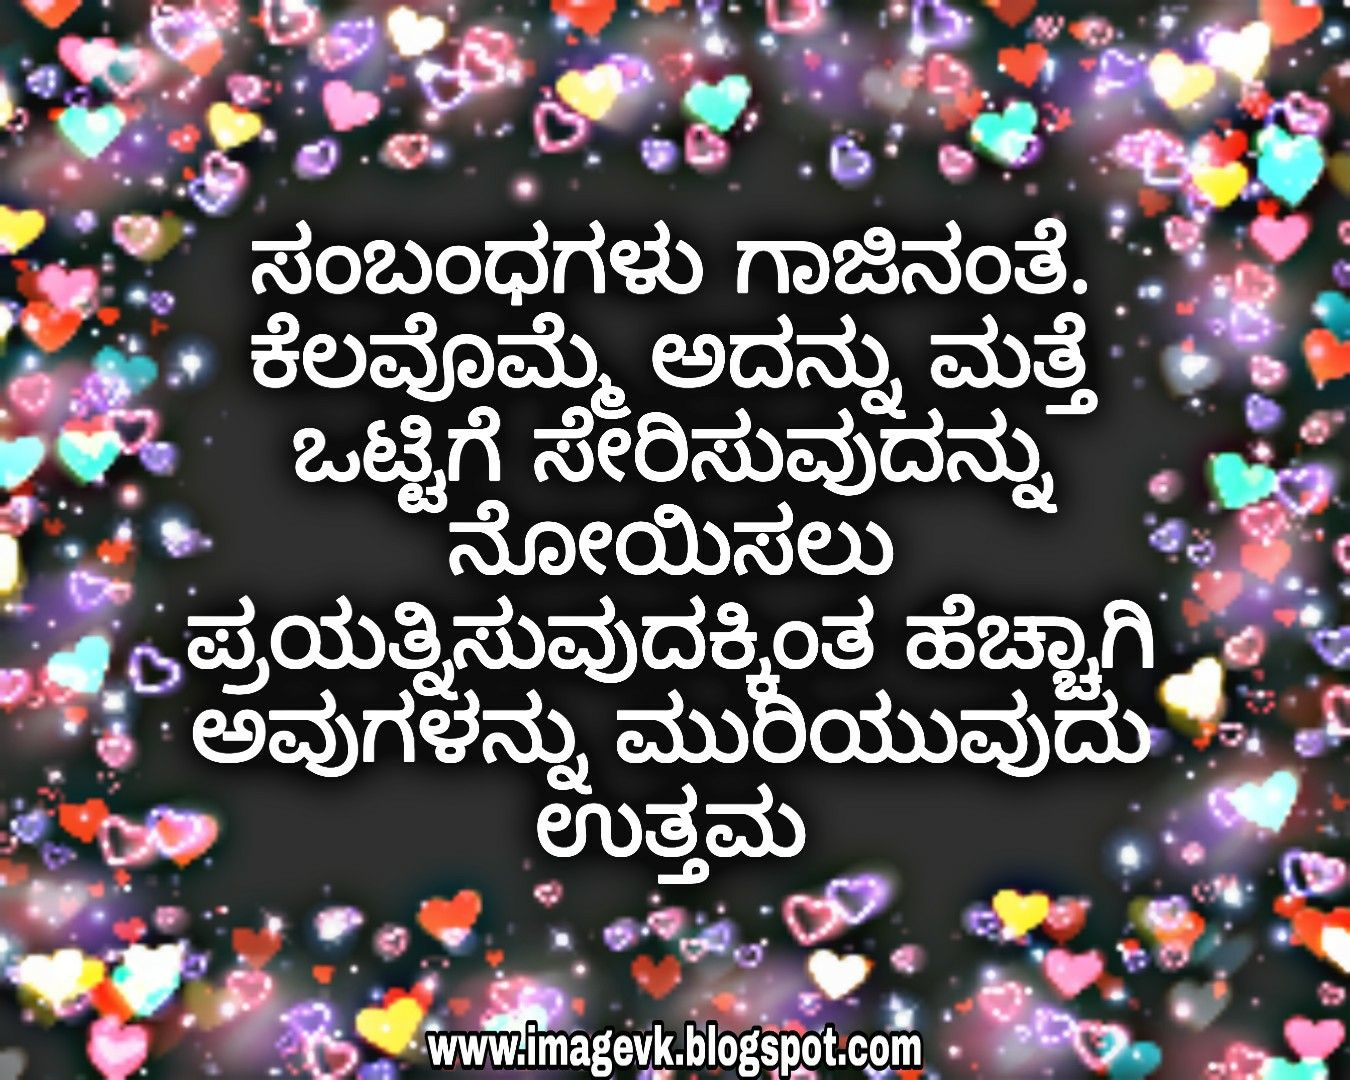 Love Quotes In Kannada Love Failure Quotes In Kannada Good Night Love Quotes In Kannada Rom Love Quotes In Kannada Love Failure Quotes Good Night Love Quotes